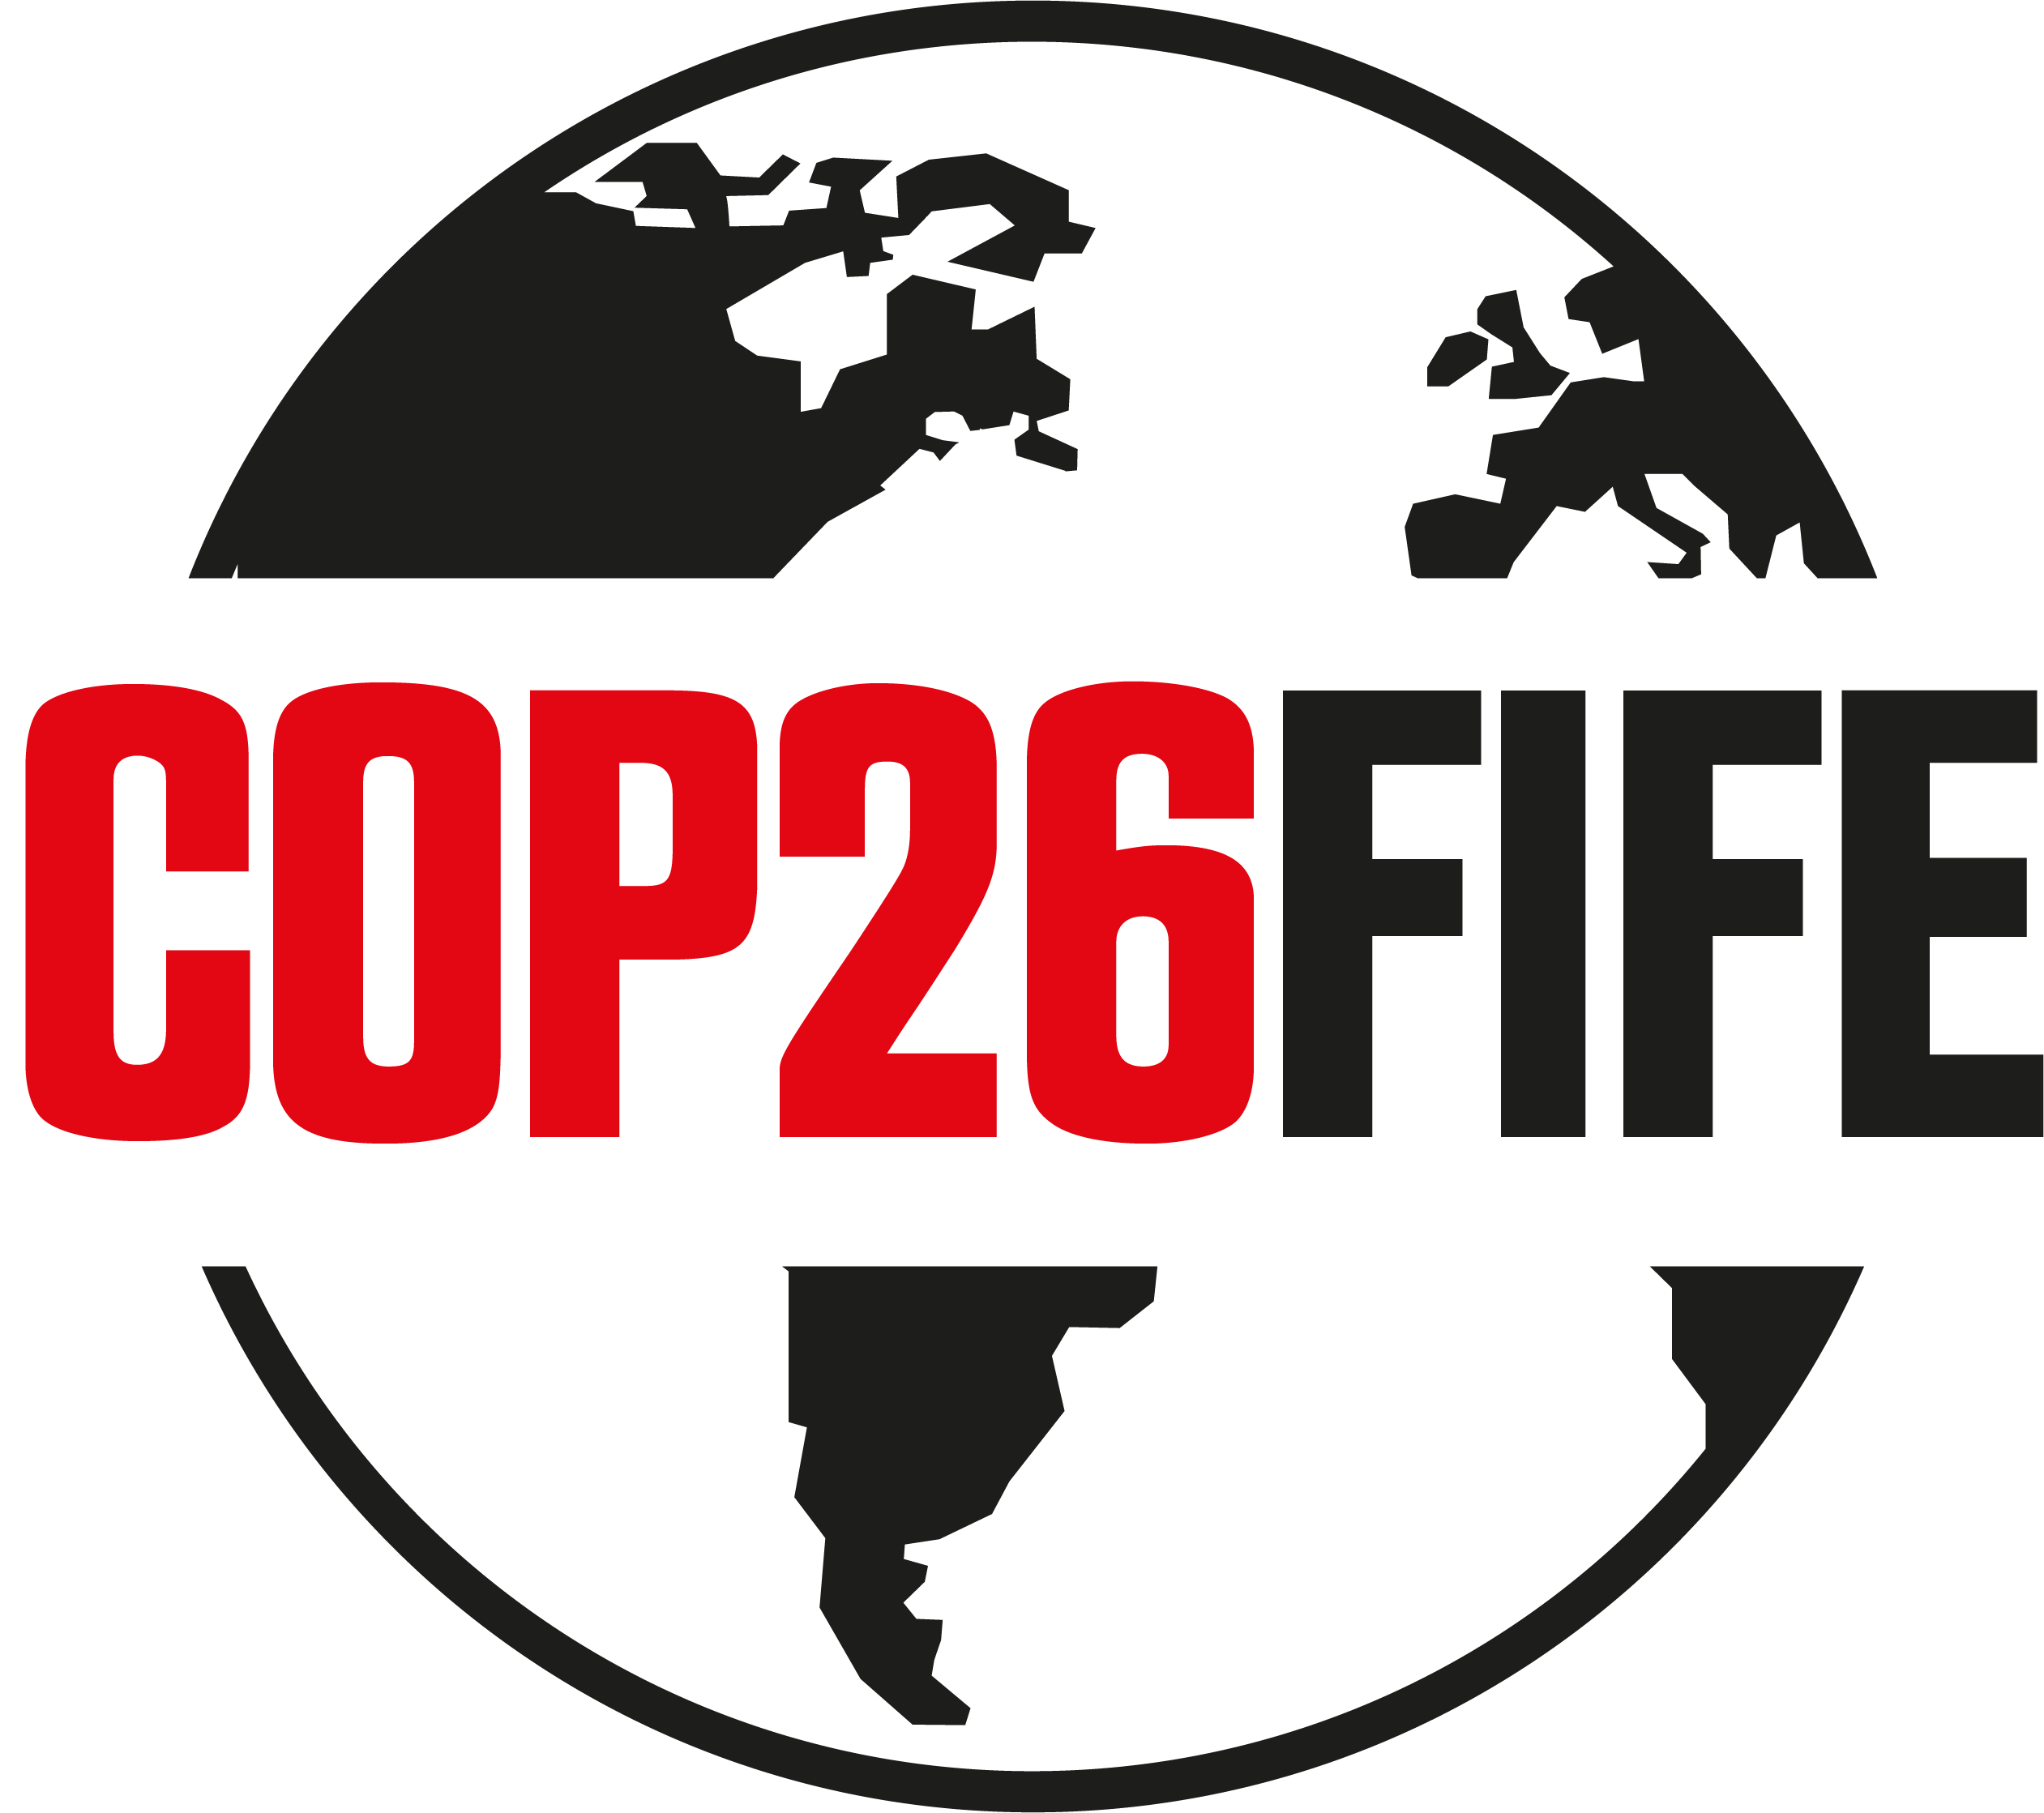 COP26 Fife black and red logo